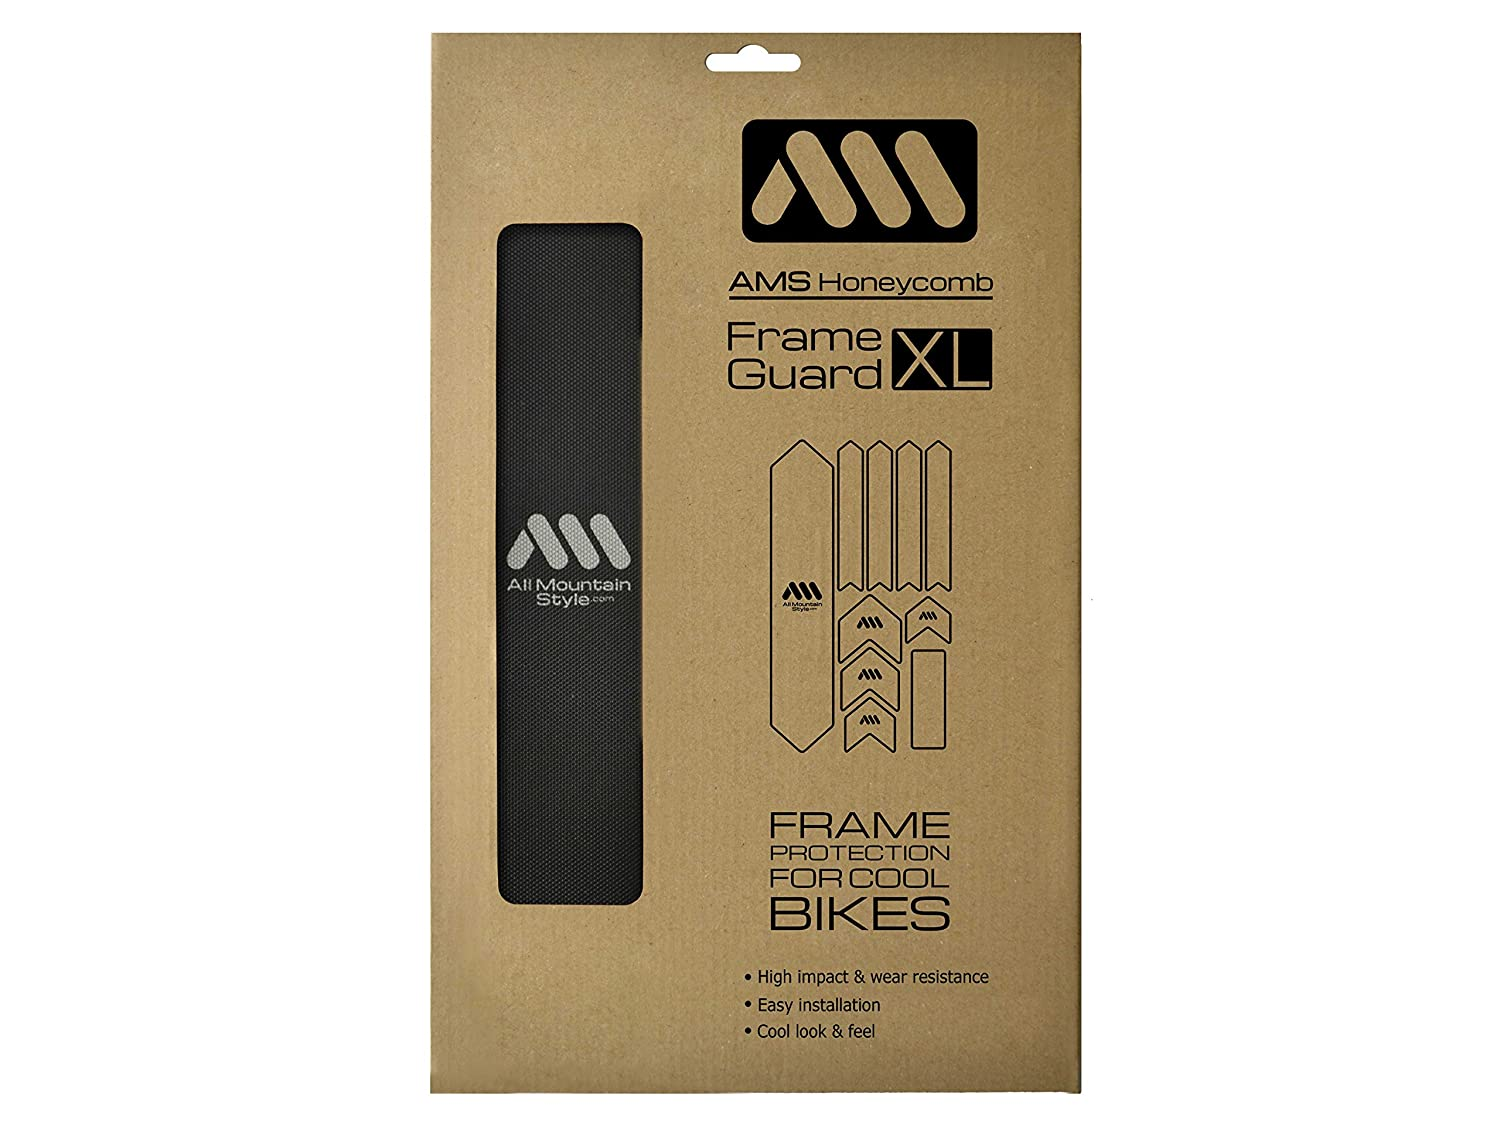 Amazon.com: All Mountain Style Honeycomb High Impact Frame Guard XL: Sports & Outdoors